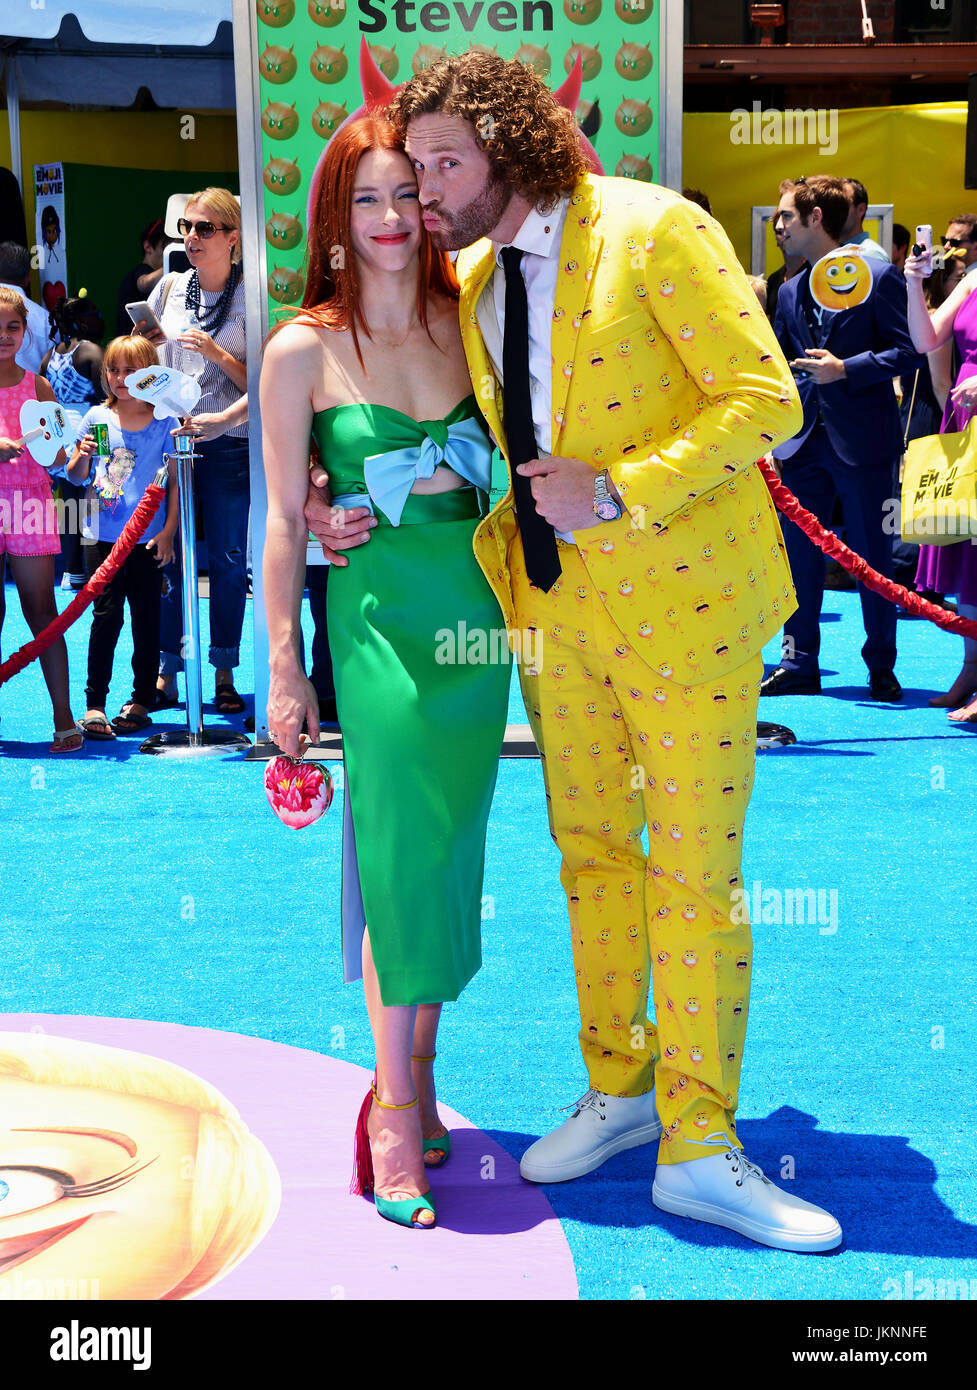 Los Angeles, USA. 23rd July, 2017. T.J. Miller , wife Kate ...